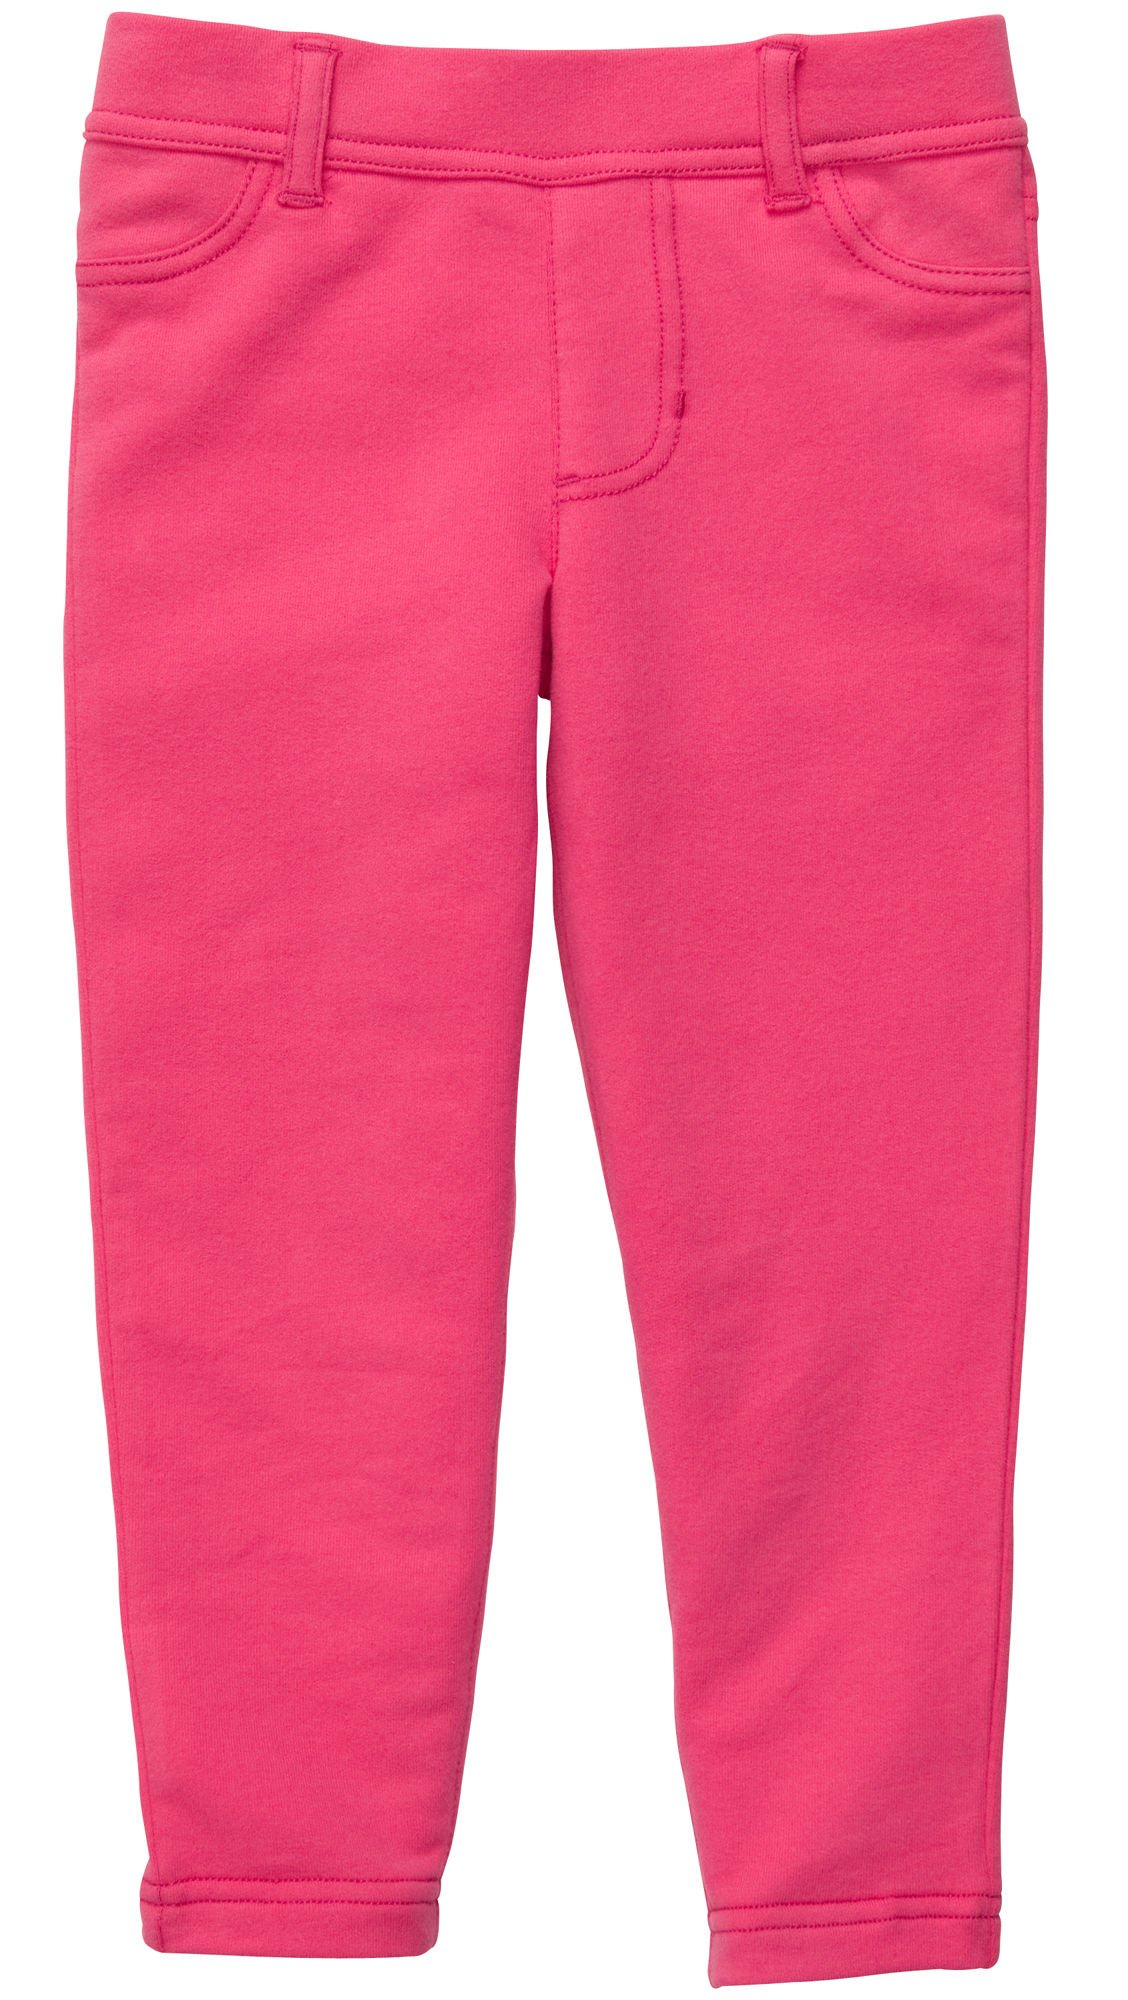 Carter's French Terry Jegging - Hot Pink- 4T